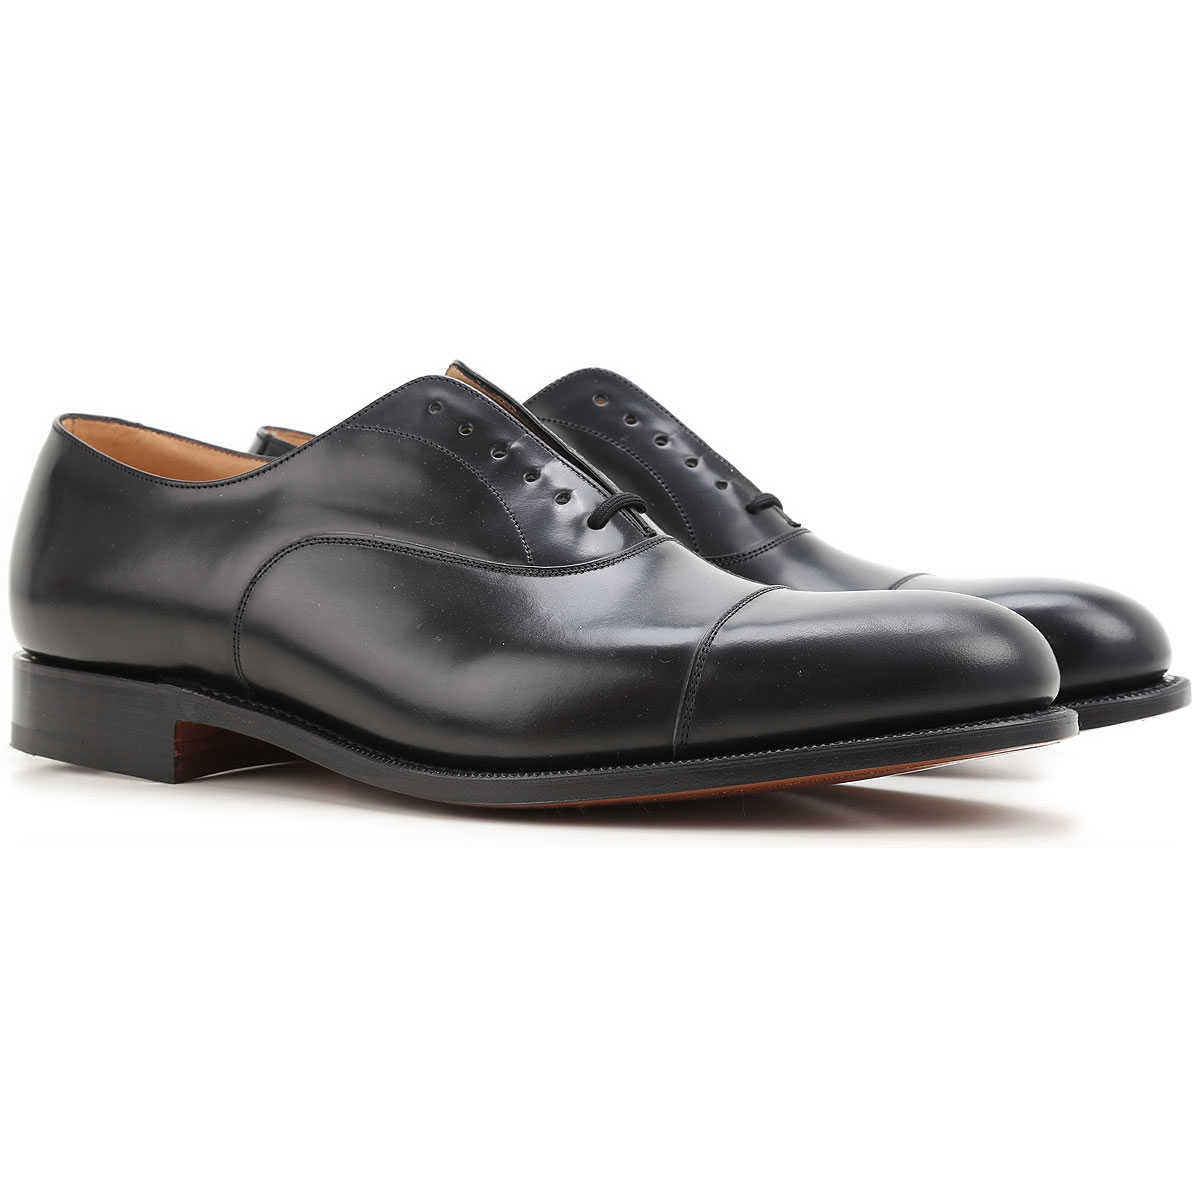 Church's Lace Up Shoes for Men Oxfords Derbies and Brogues - GOOFASH